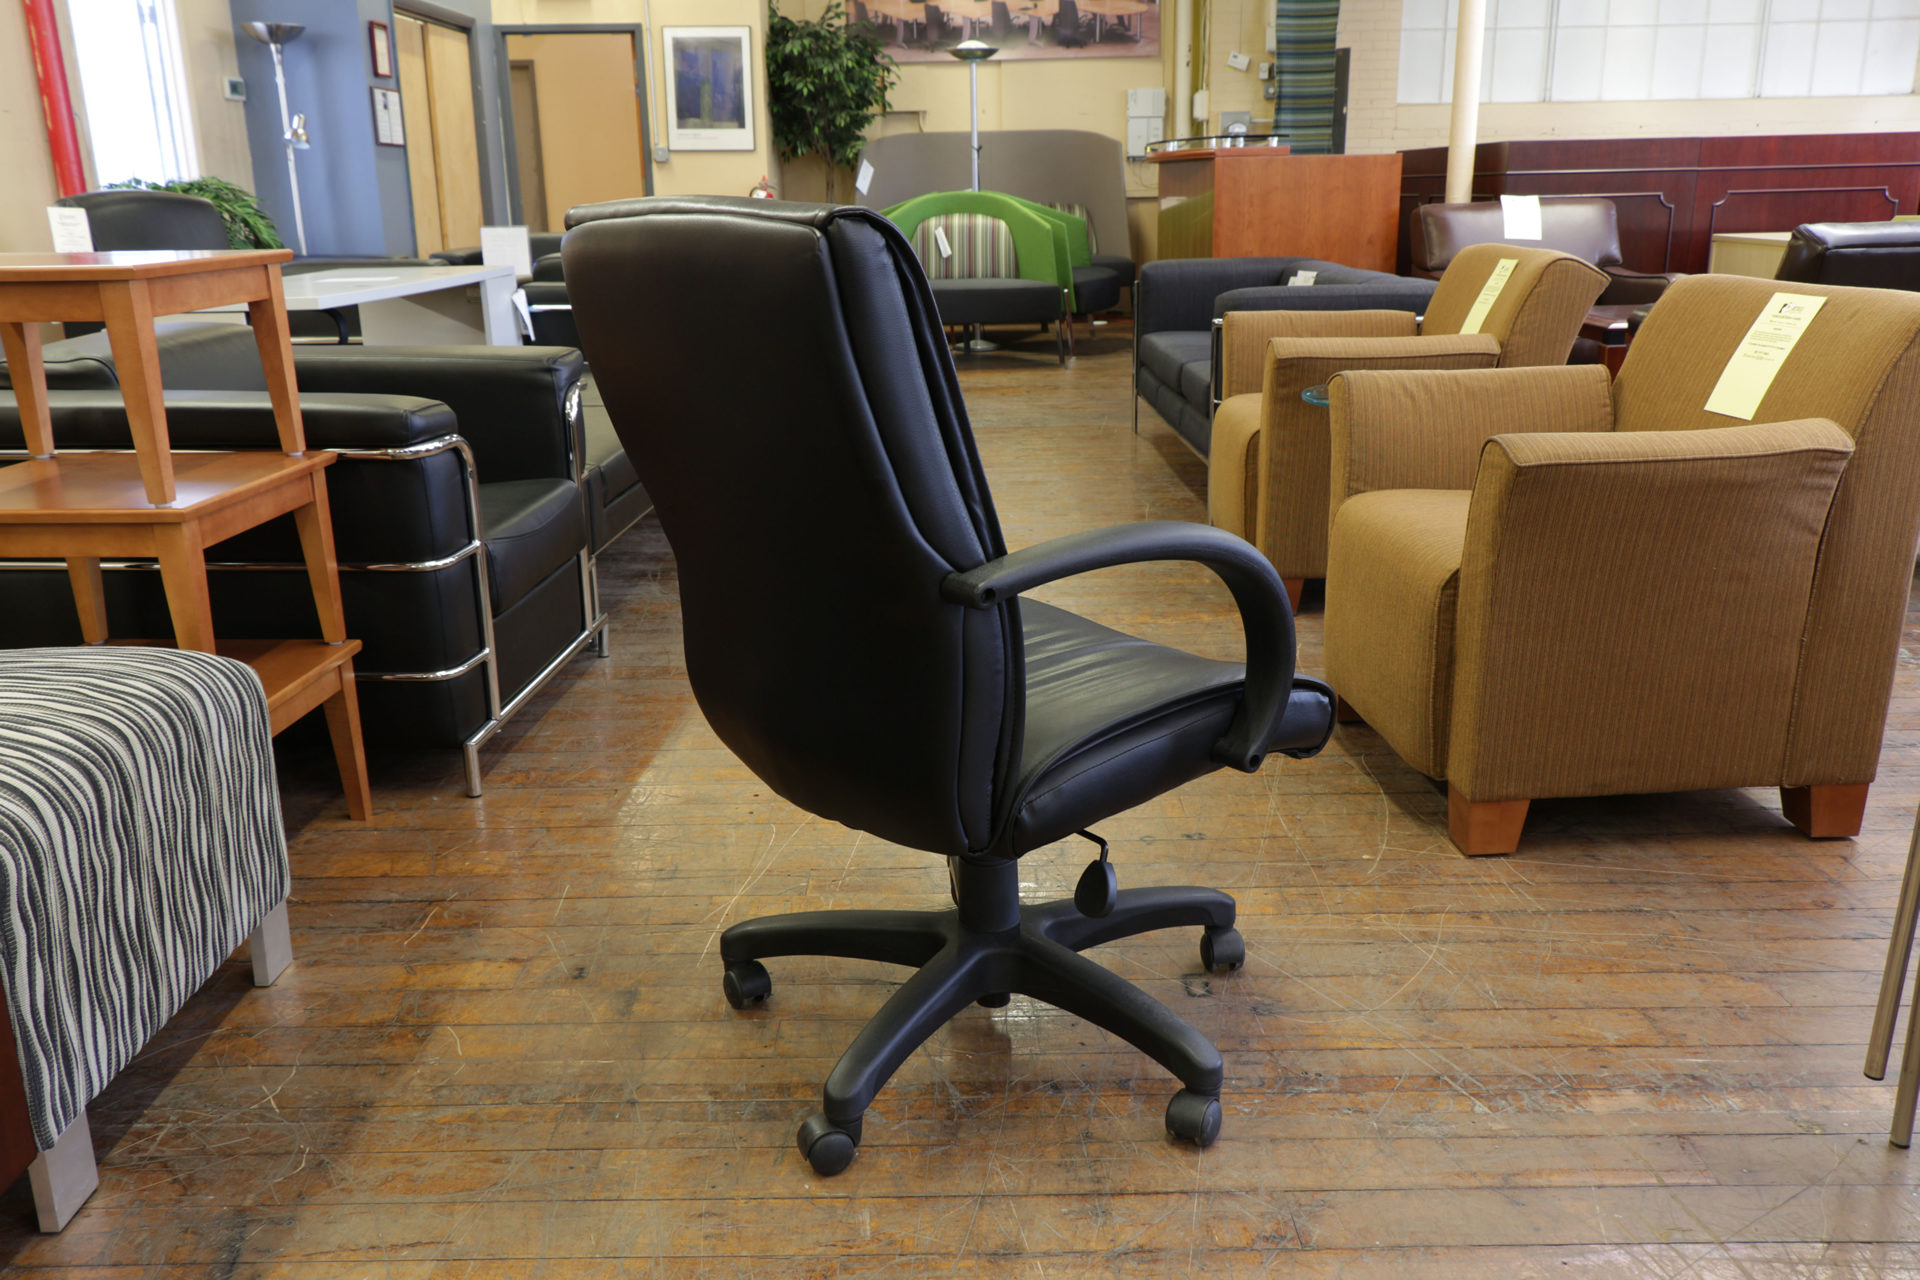 Steelcase 319 Executive Mid-Back Black Leather Task Chair